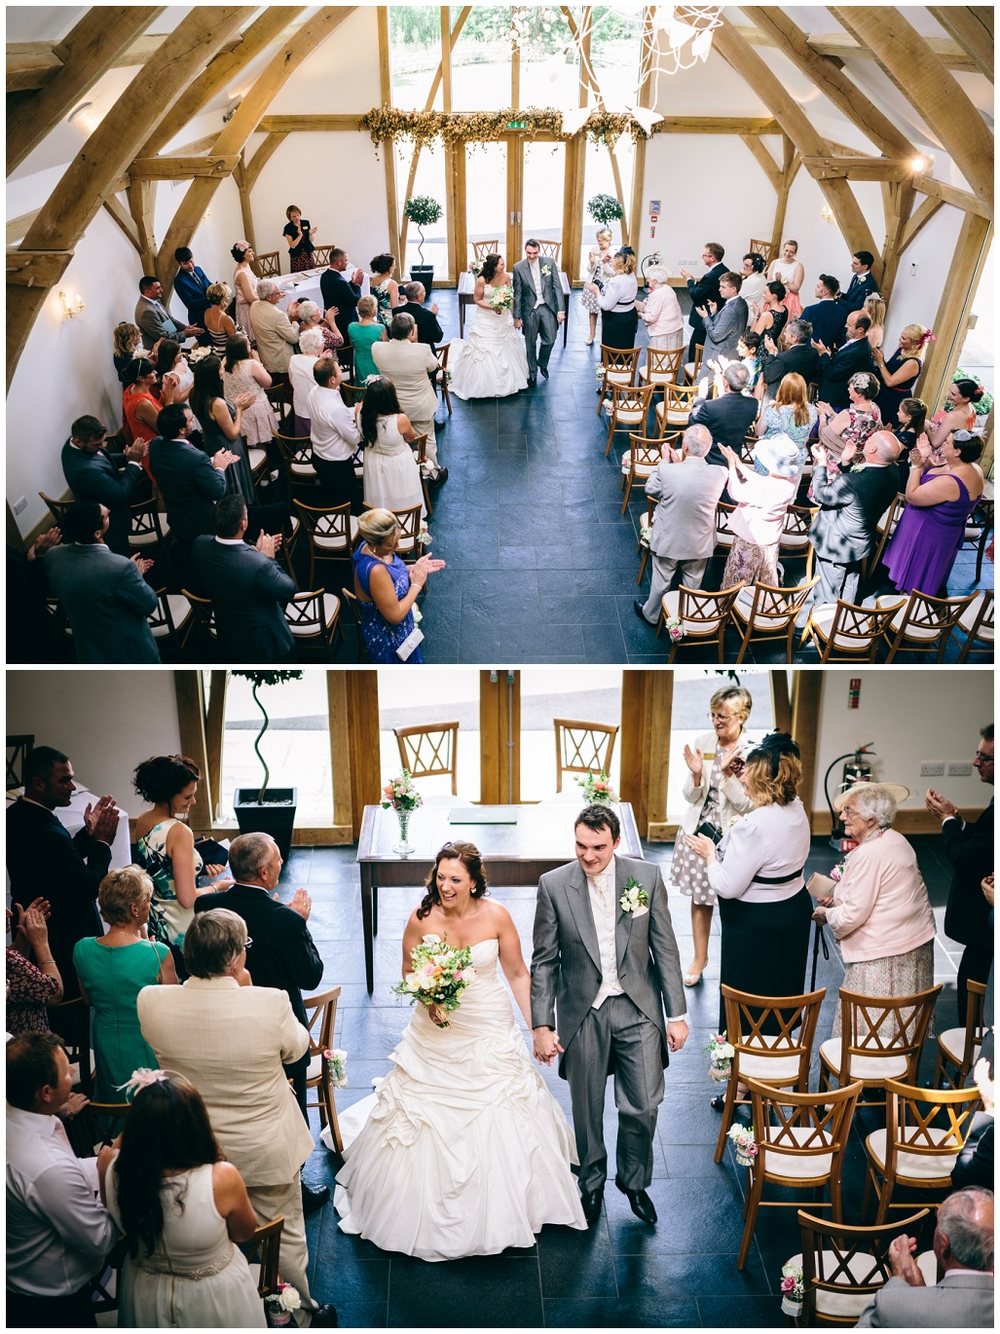 Mythe Barn Wedding - Hayley & Martin (16)